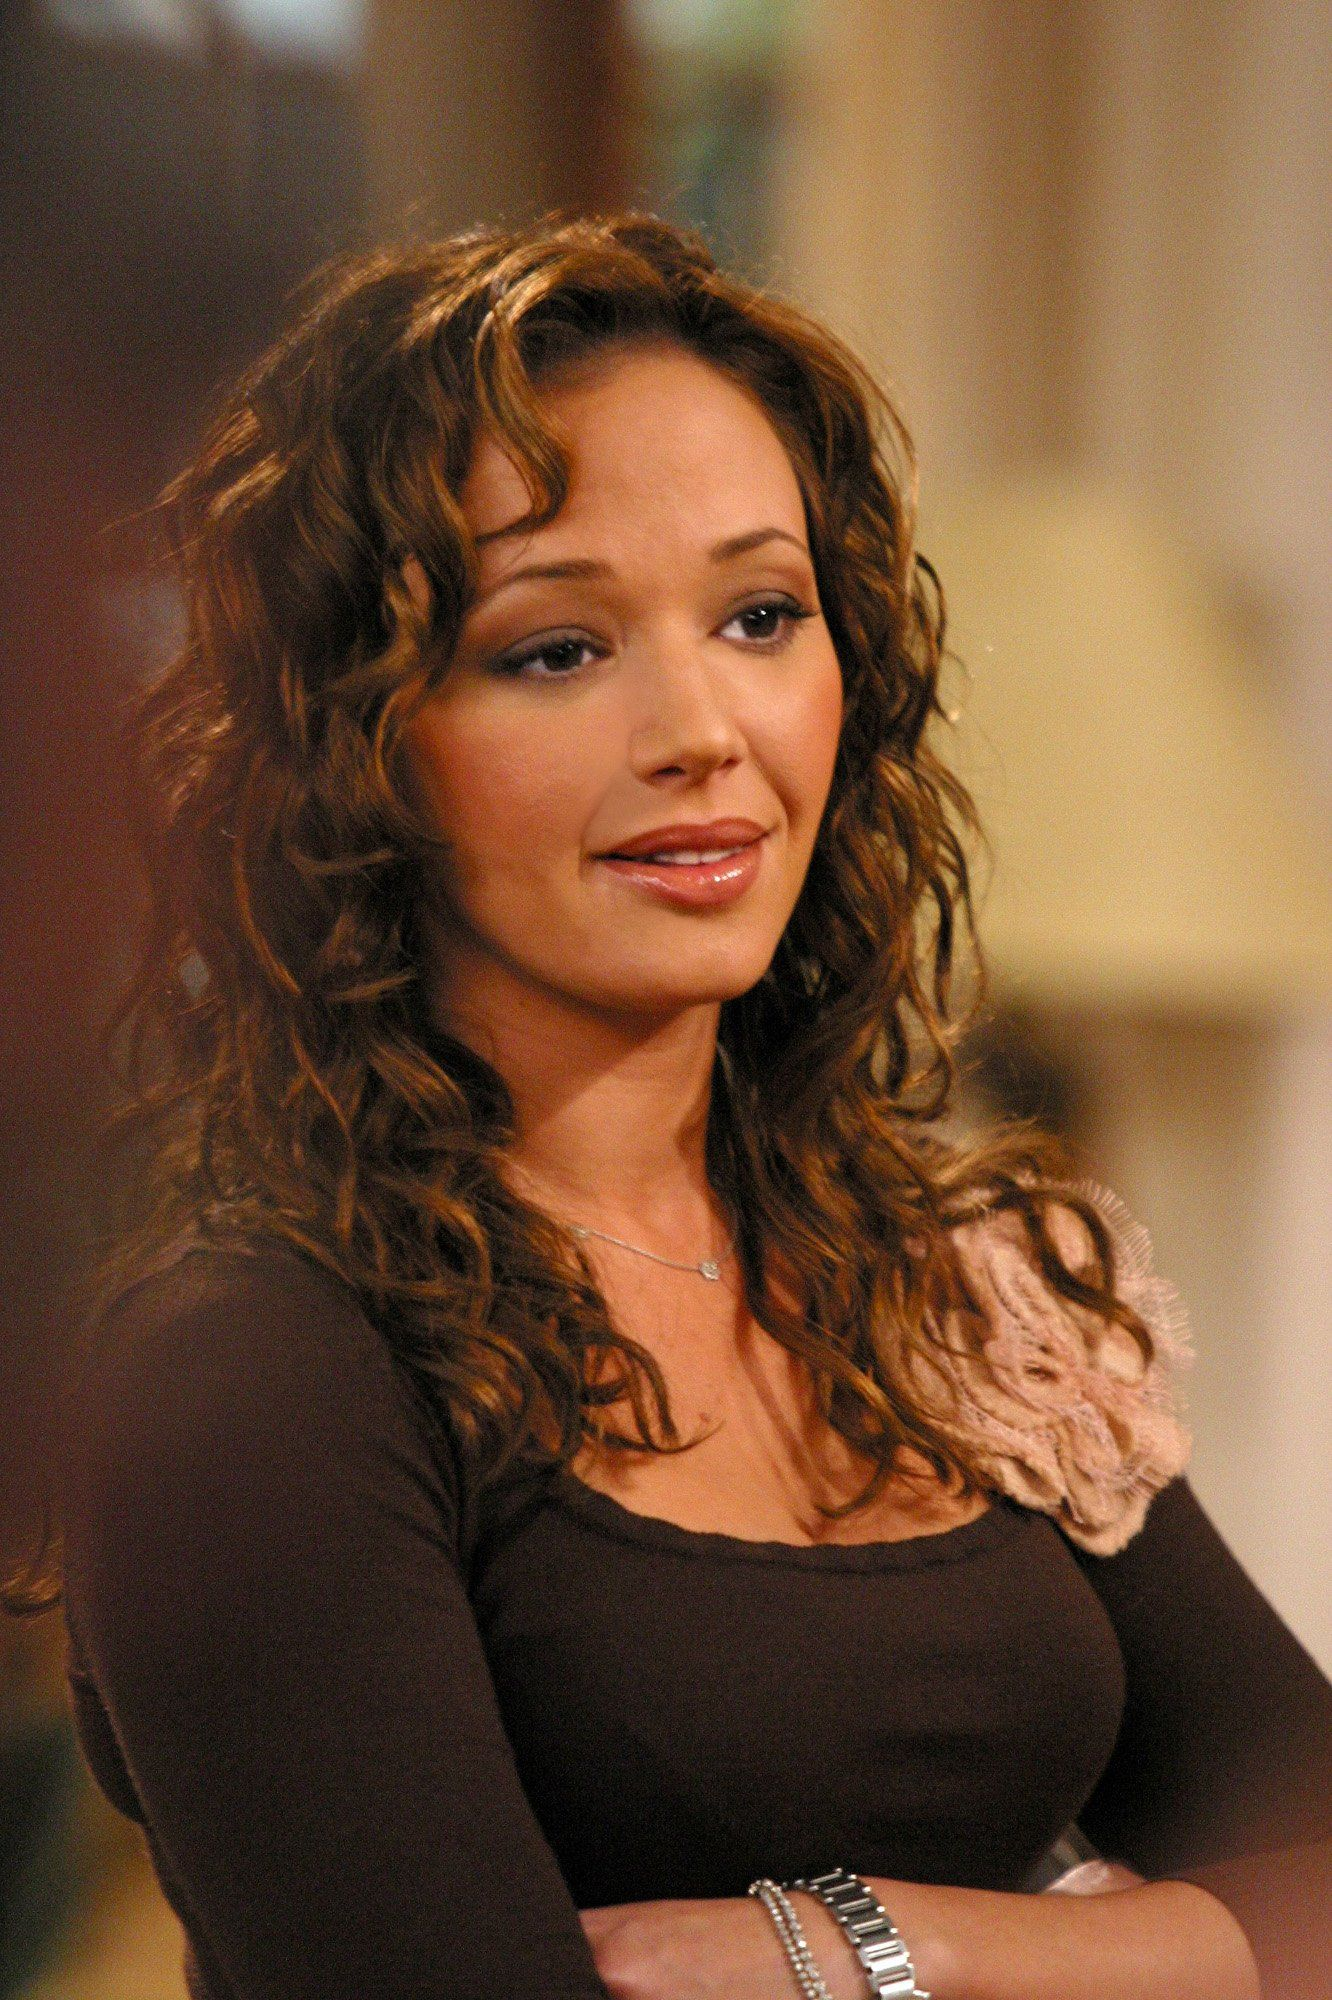 Words... super Chick from king of queens